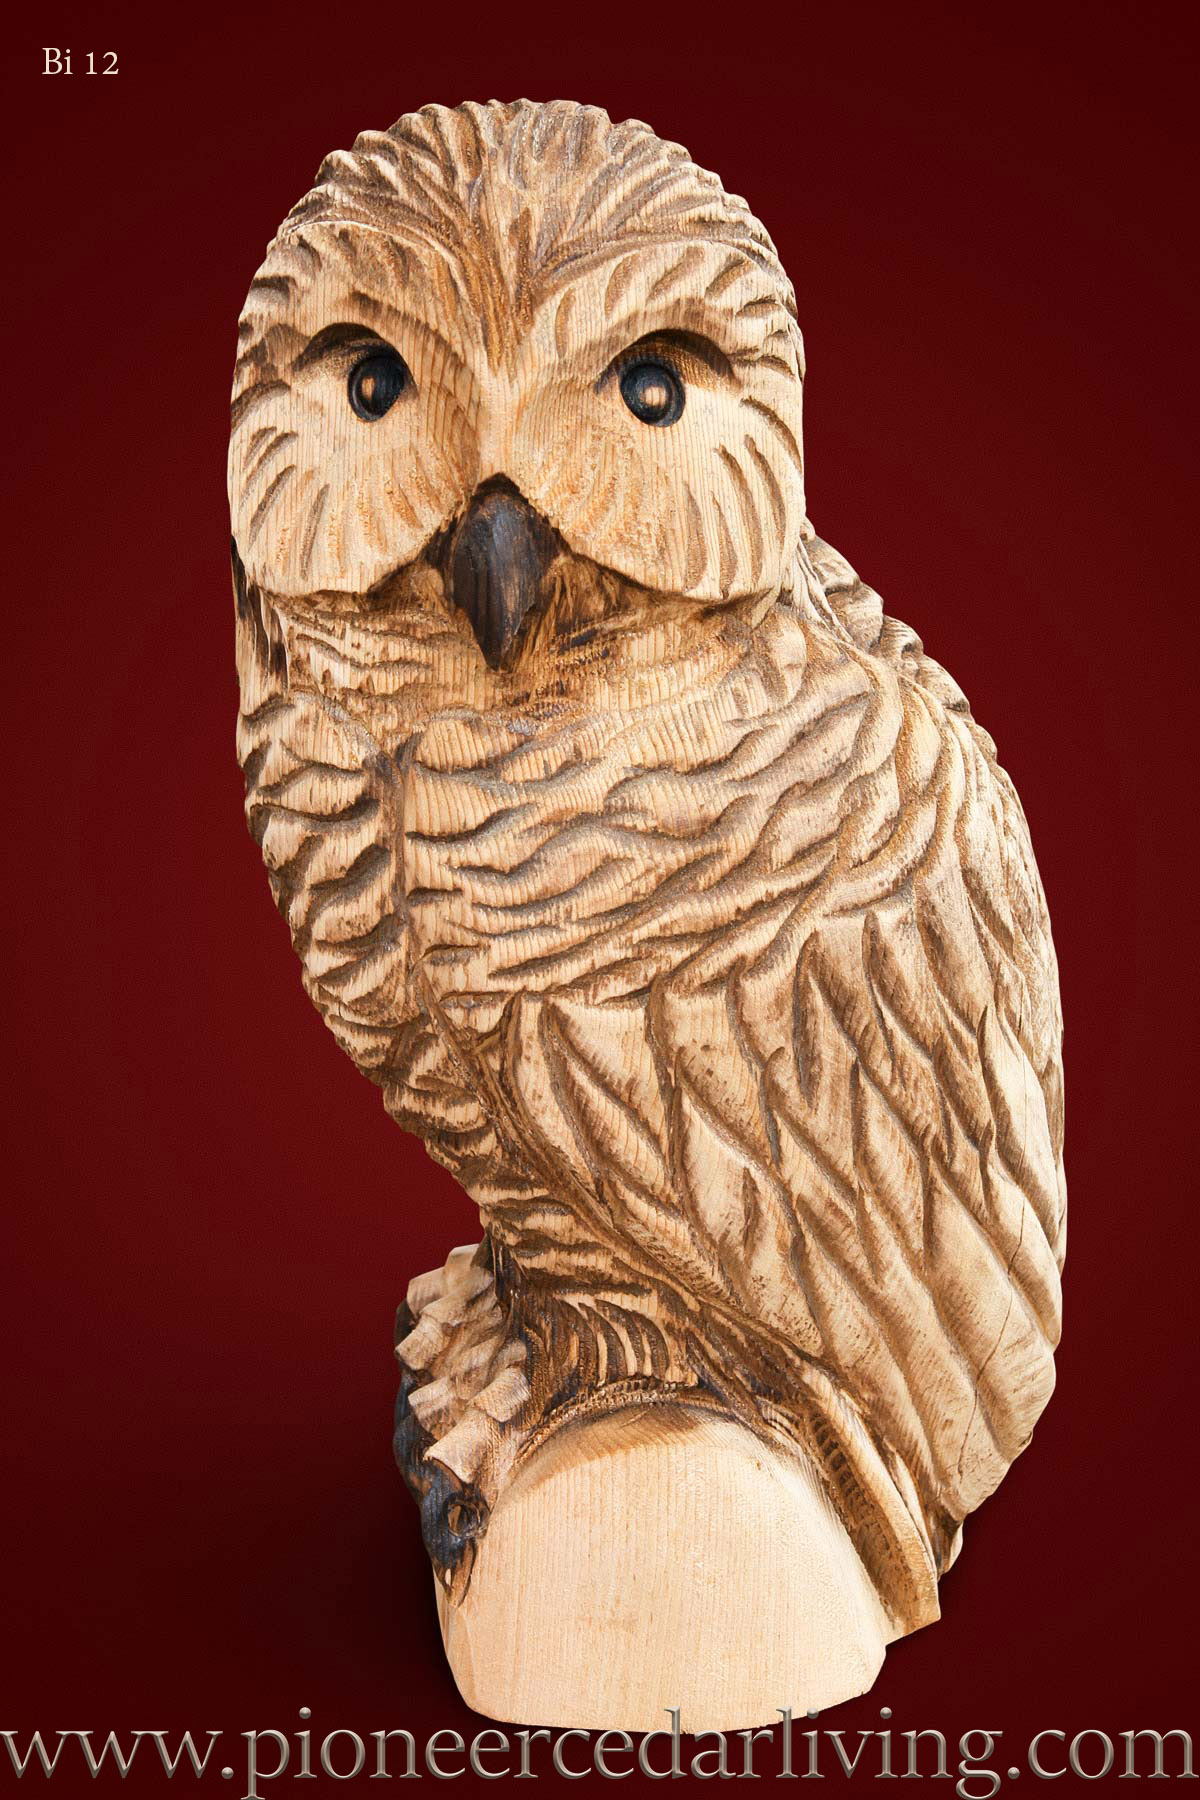 Owl chainsaw carving pioneer cedar living